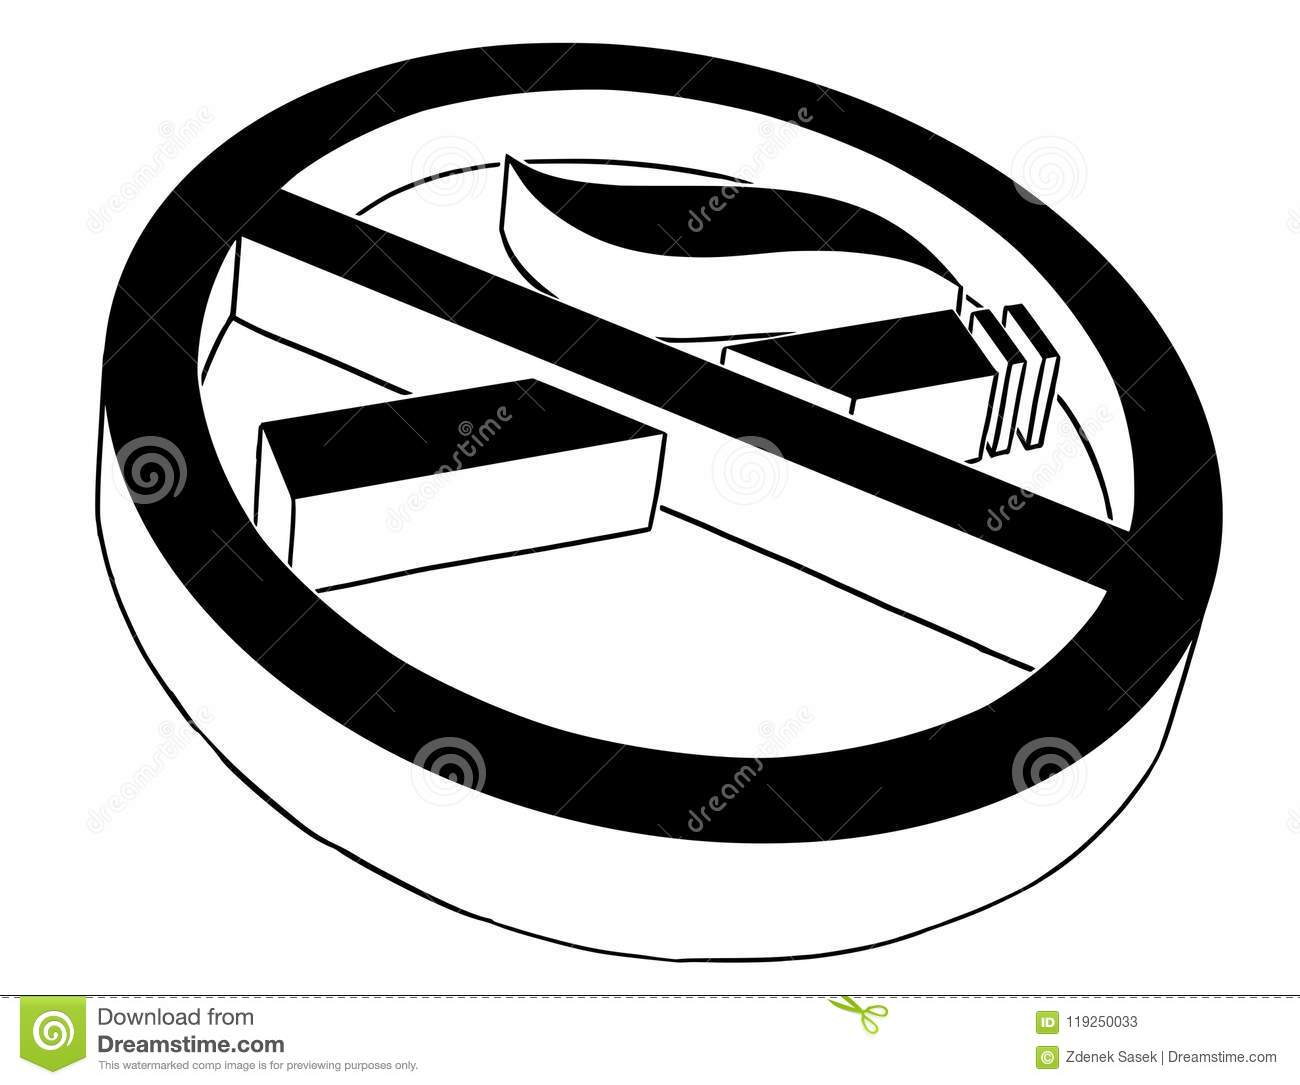 Vector Artistic Drawing Illustration Of No Smoking Symbol Or Sign